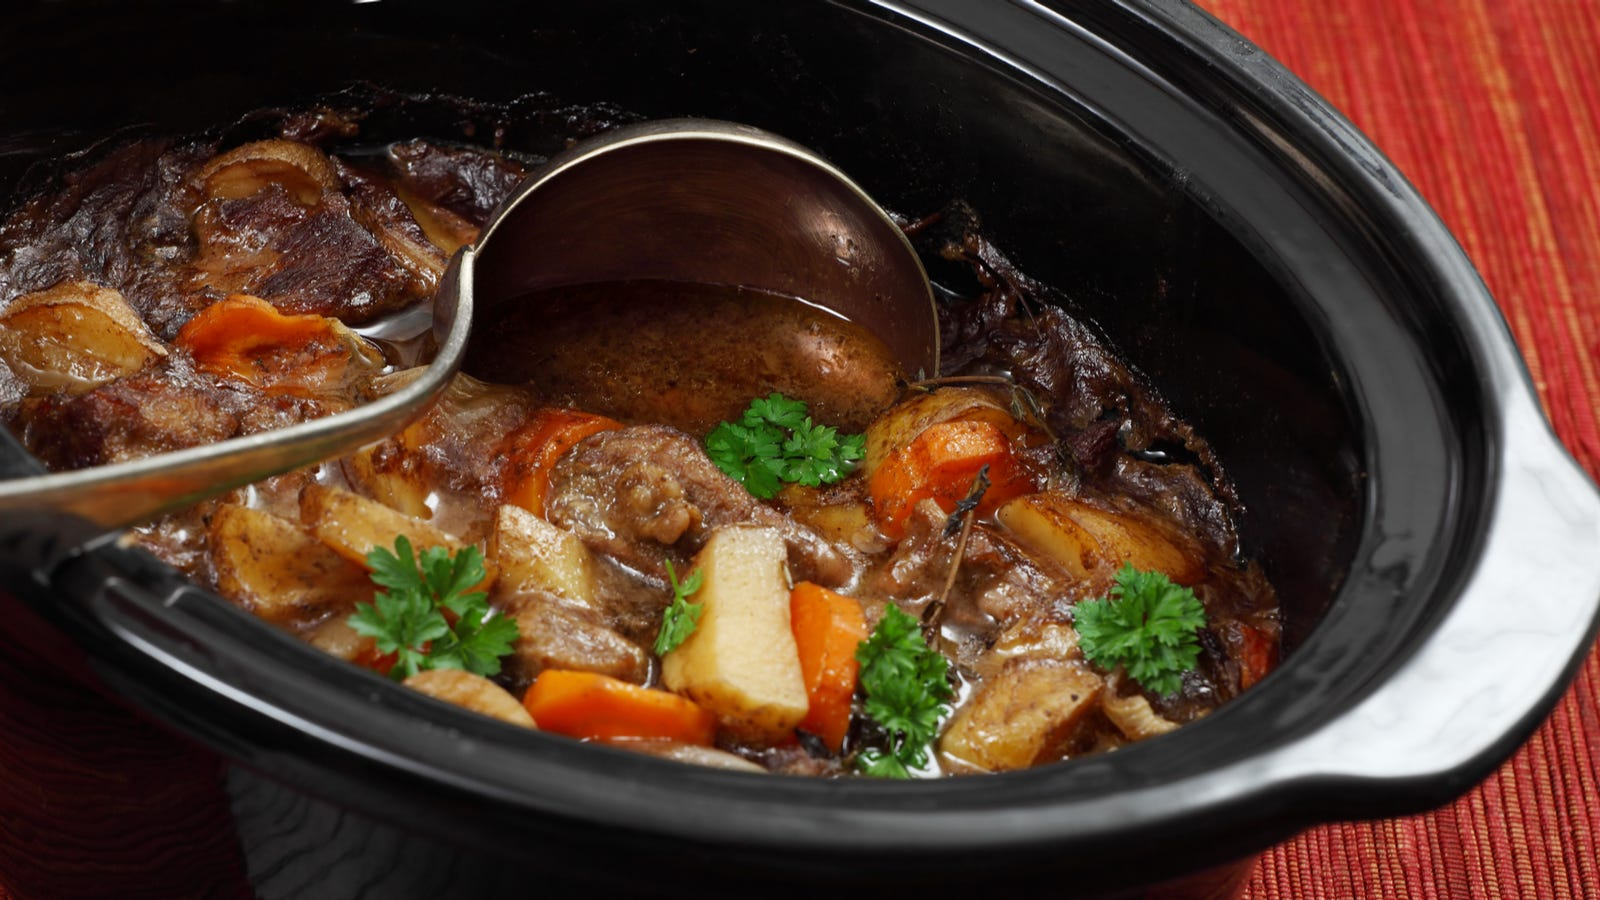 A ladle in a slow cooker full of beef stew.